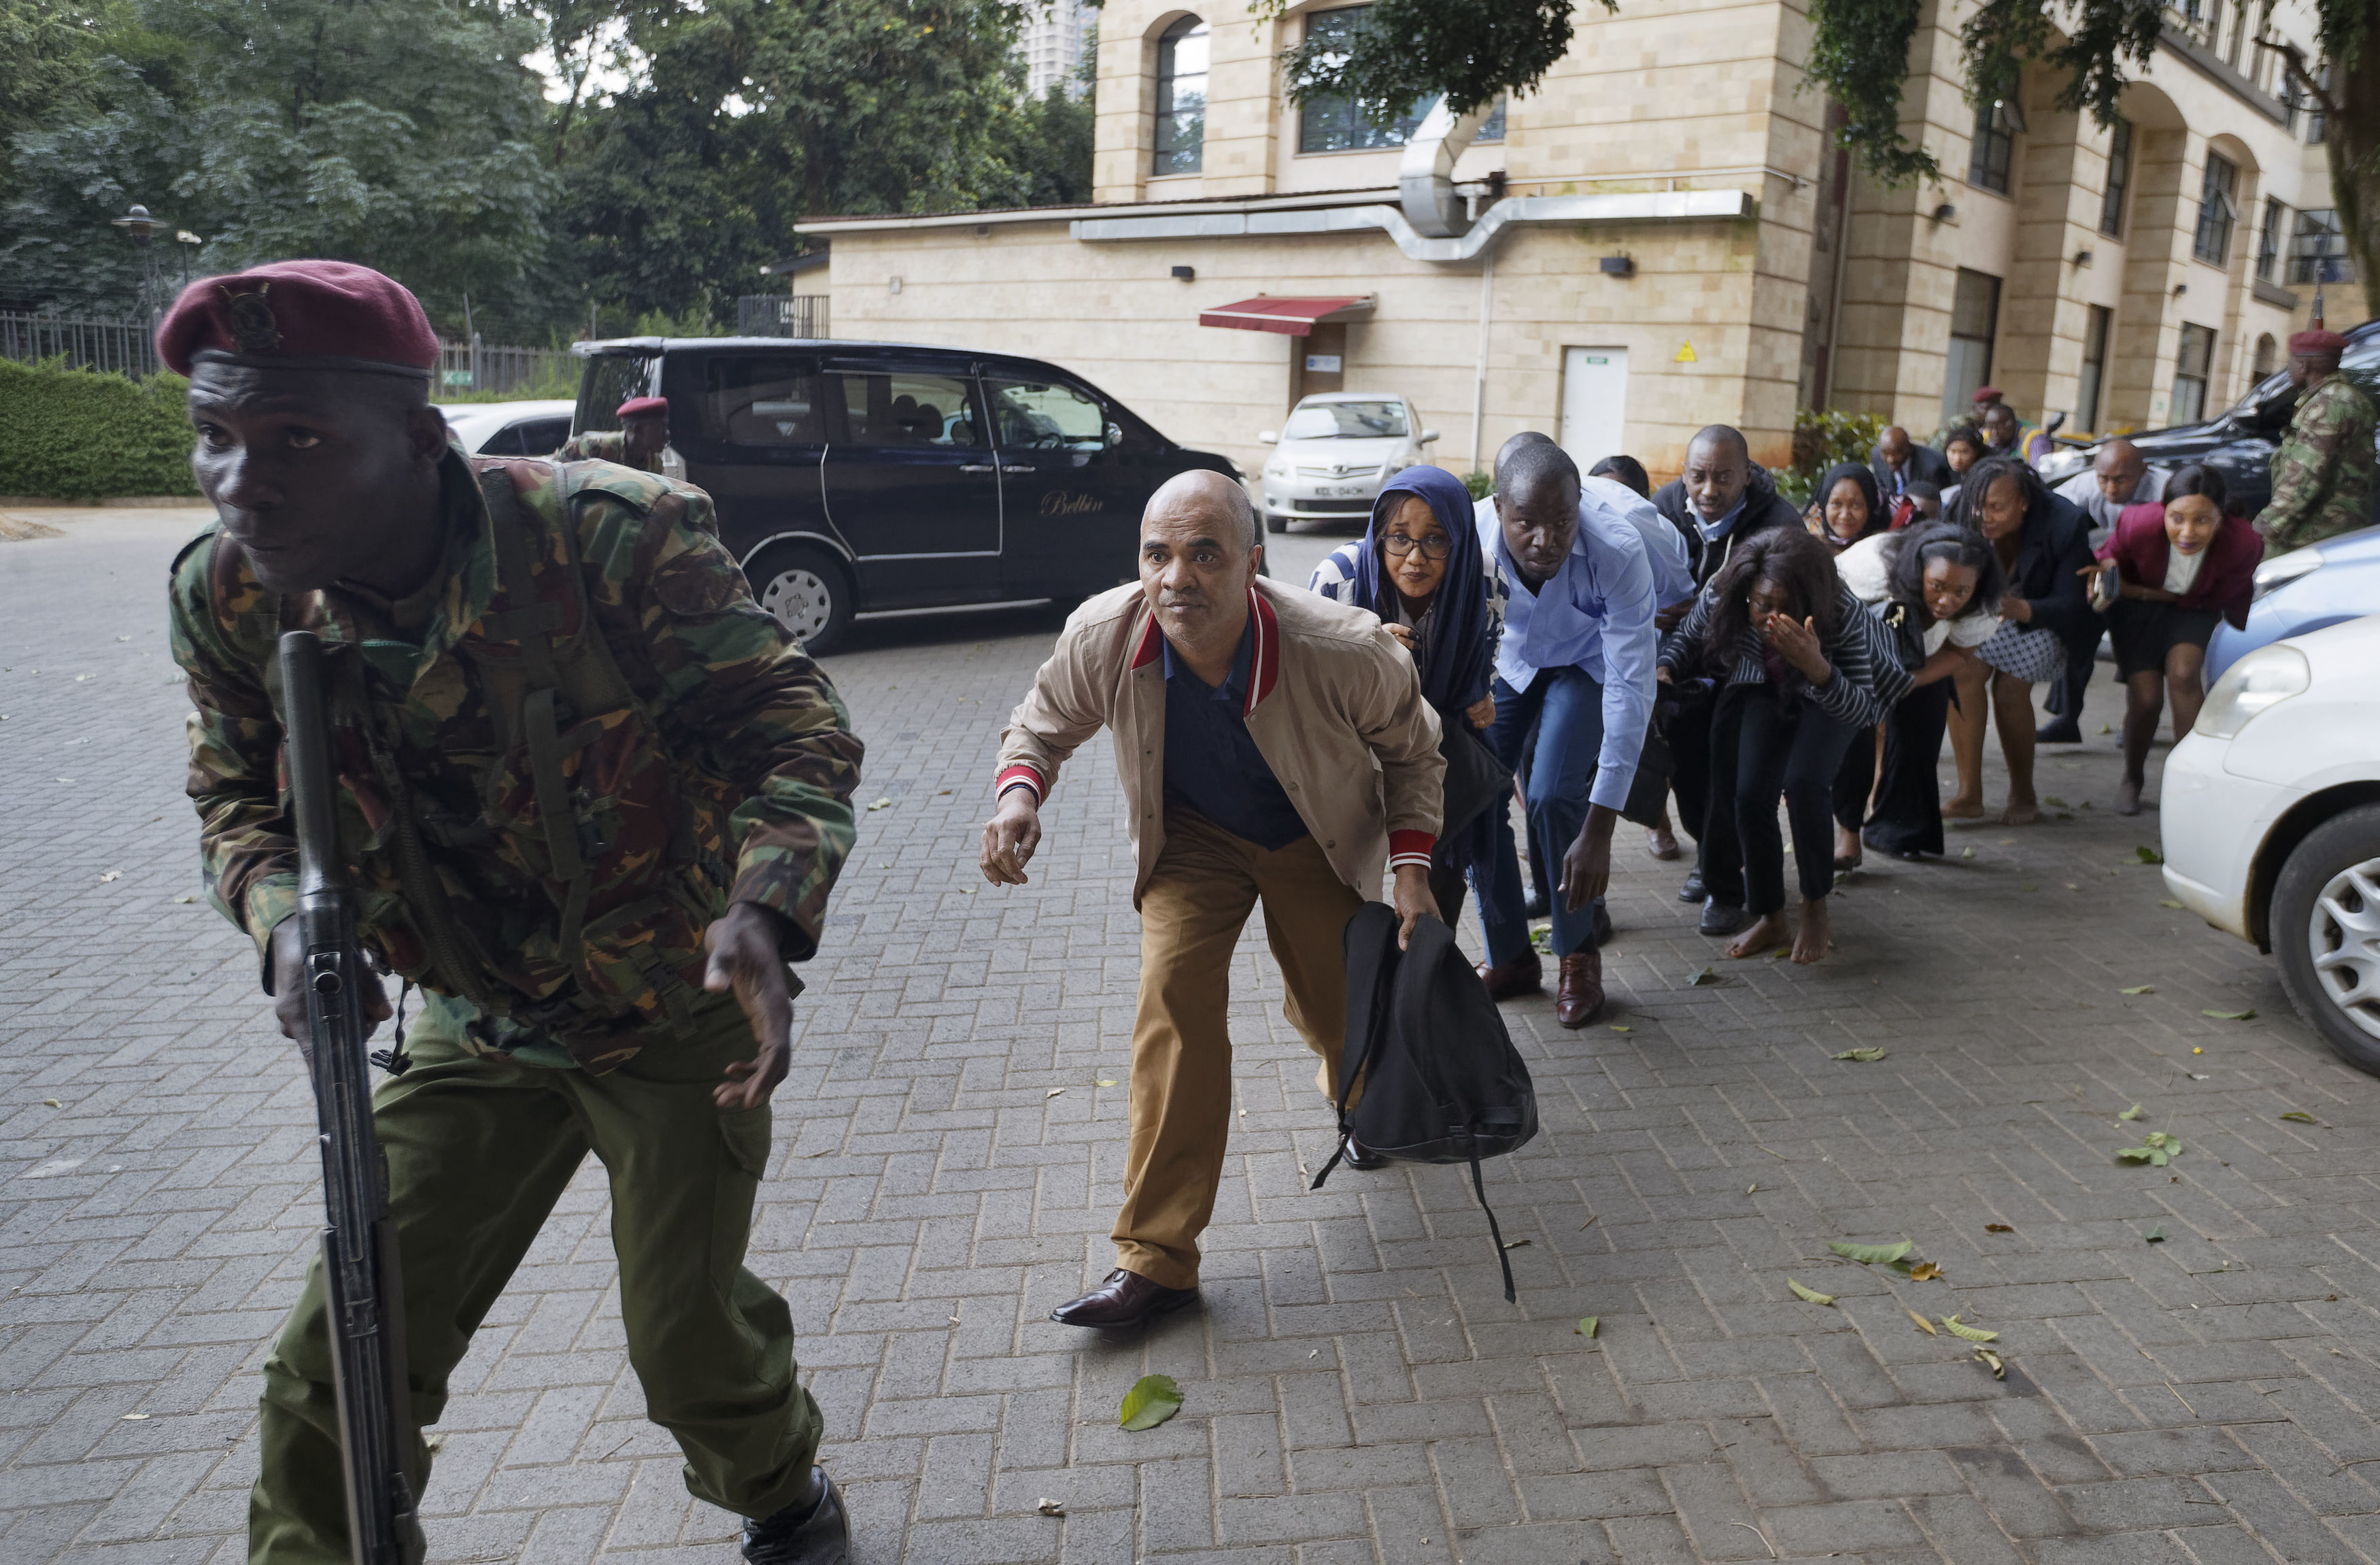 Civilians who had been hiding in buildings flee under the direction of a member of security forces at a hotel complex in Nairobi,. Terrorists attacked an upscale hotel complex in Kenya's capital Tuesday, sending people fleeing in panic as explosions and heavy gunfire reverberated through the neighborhood.